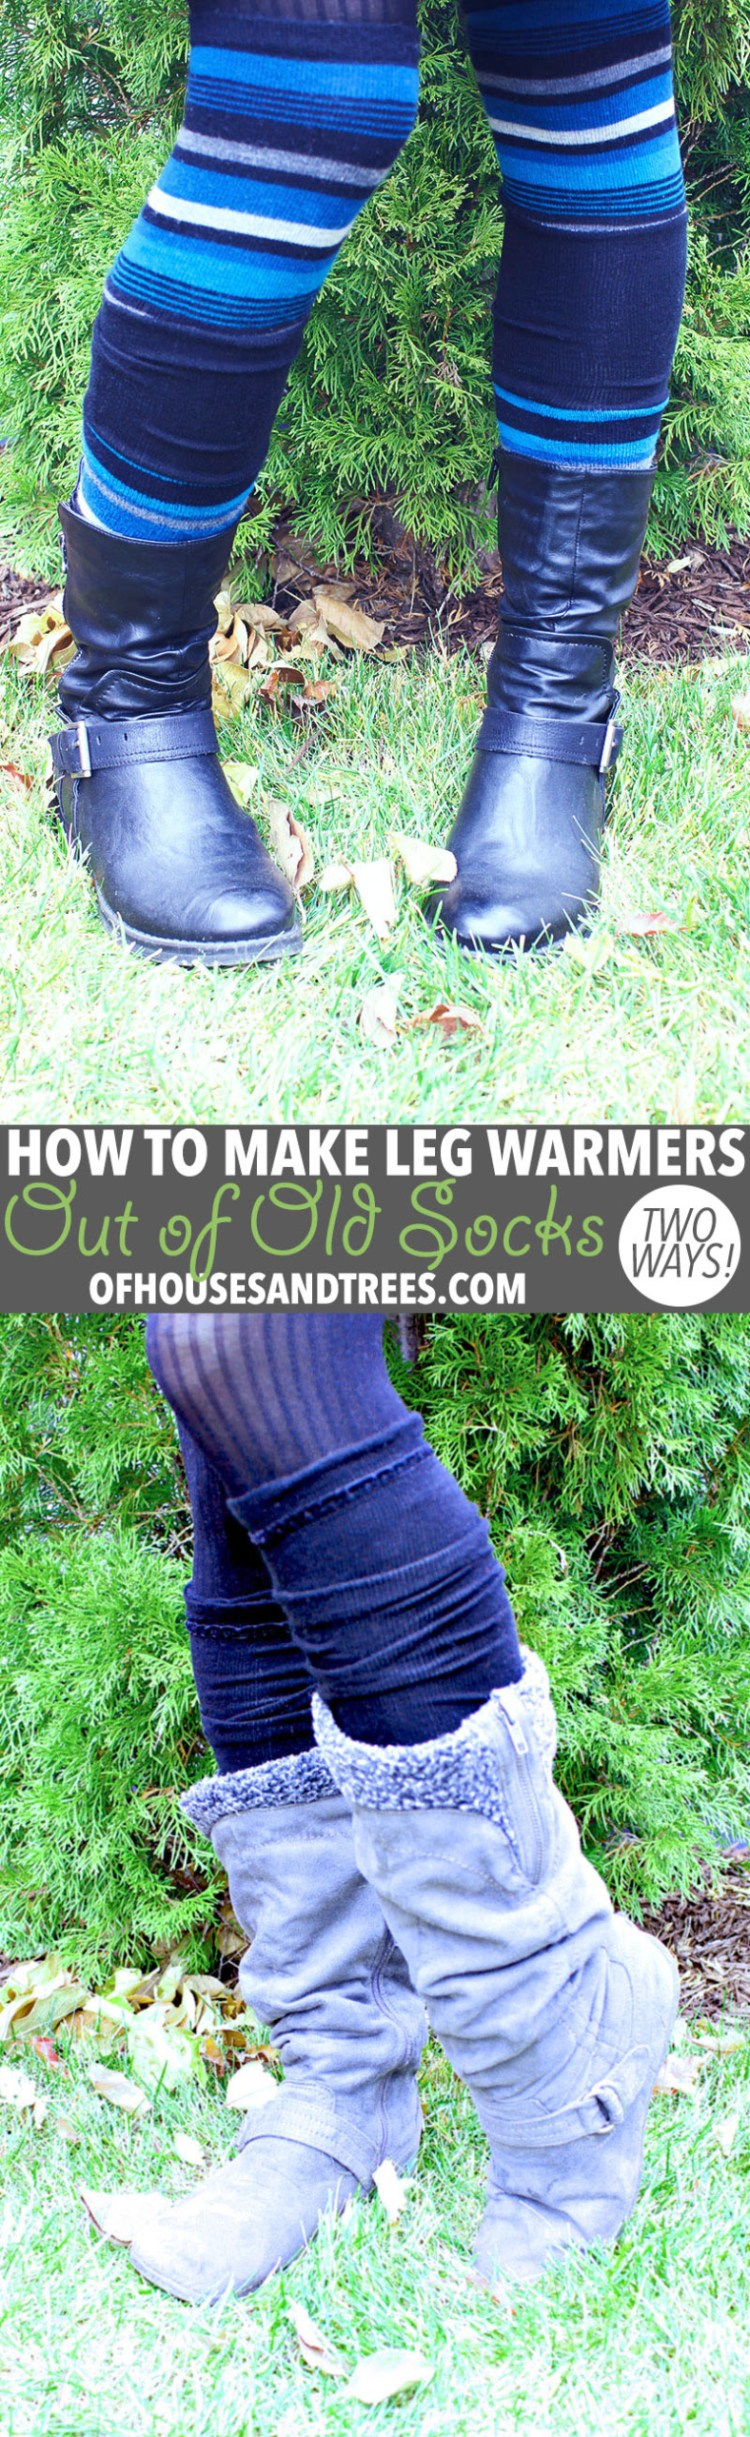 DIY Leg Warmers | Leg warmers aren't just for dancers. They keep the legs toasty and also look kind of cute, no? Here are two ways to make DIY leg warmers out of old socks!DIY Leg Warmers | Leg warmers aren't just for dancers. They keep the legs toasty and also look kind of cute, no? Here are two ways to make DIY leg warmers out of old socks!